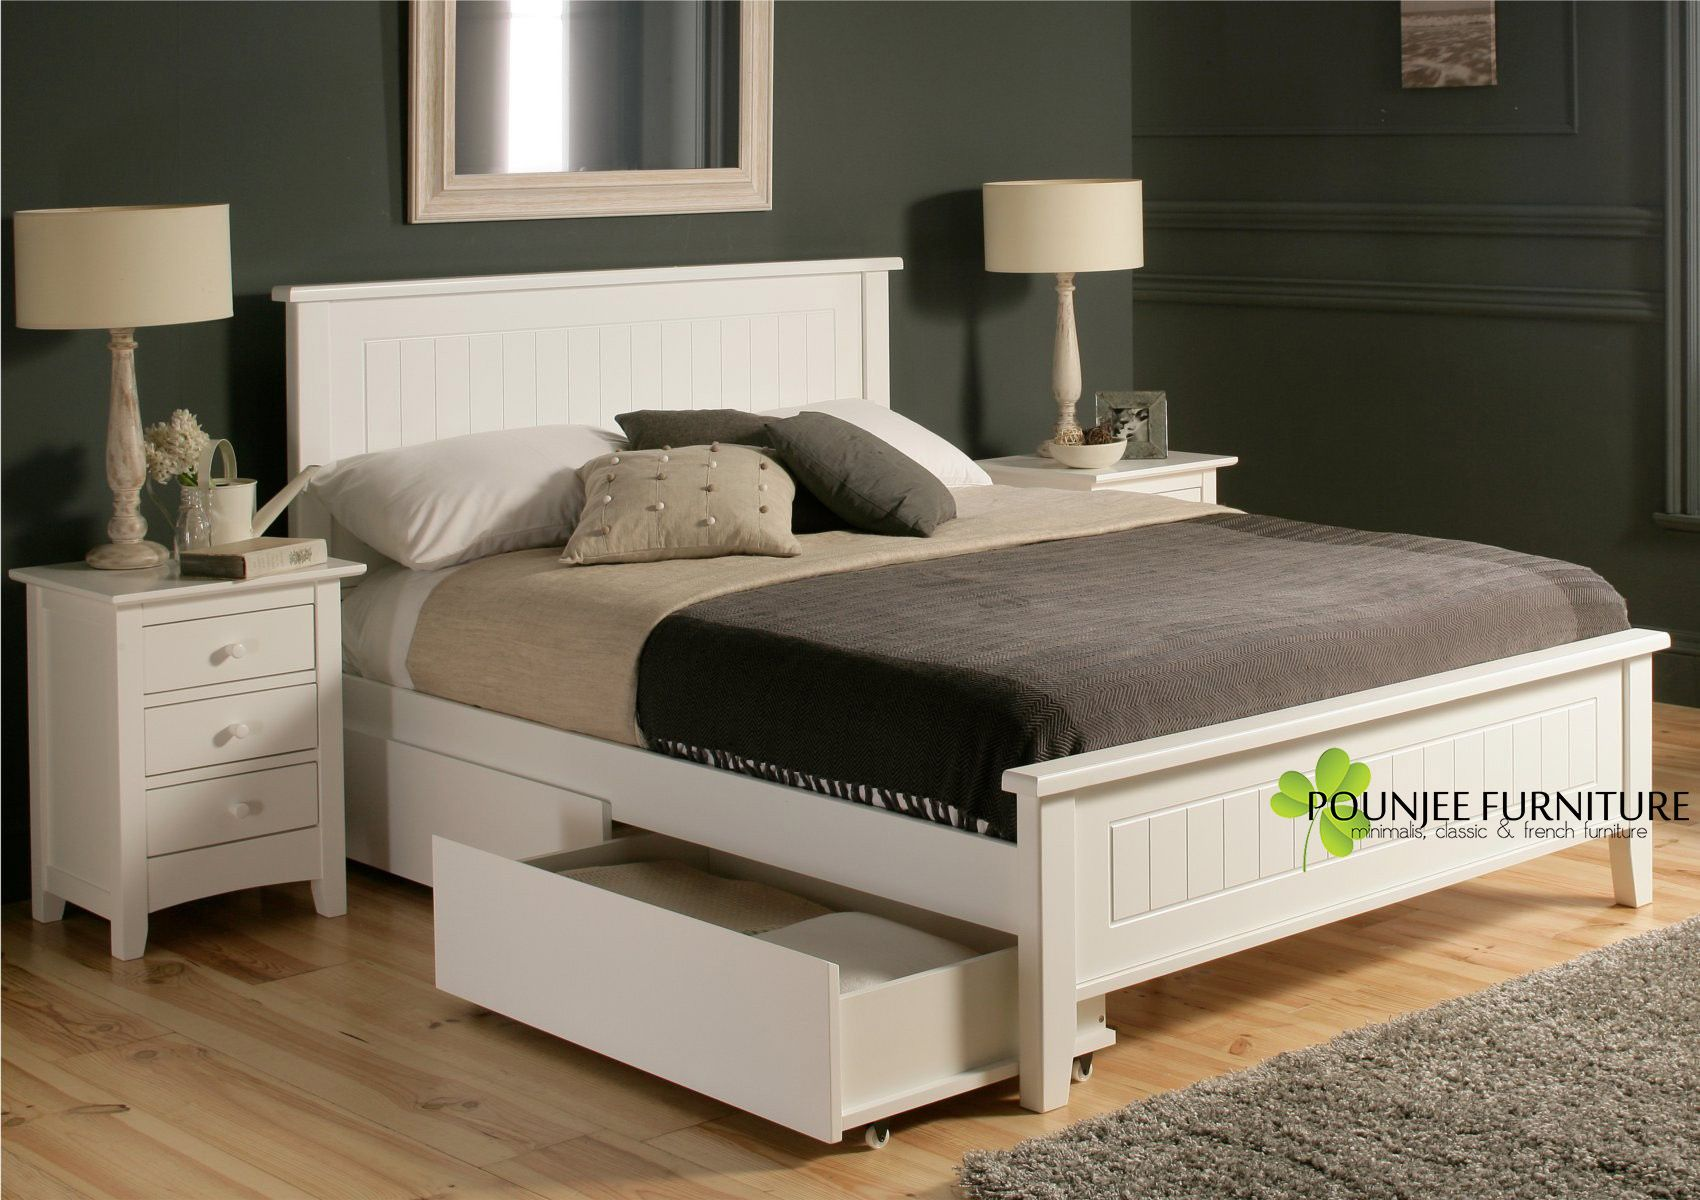 Tempat Tidur Minimalis Duco Putih White Bed Frame White Wooden Bed Bed With Drawers Underneath